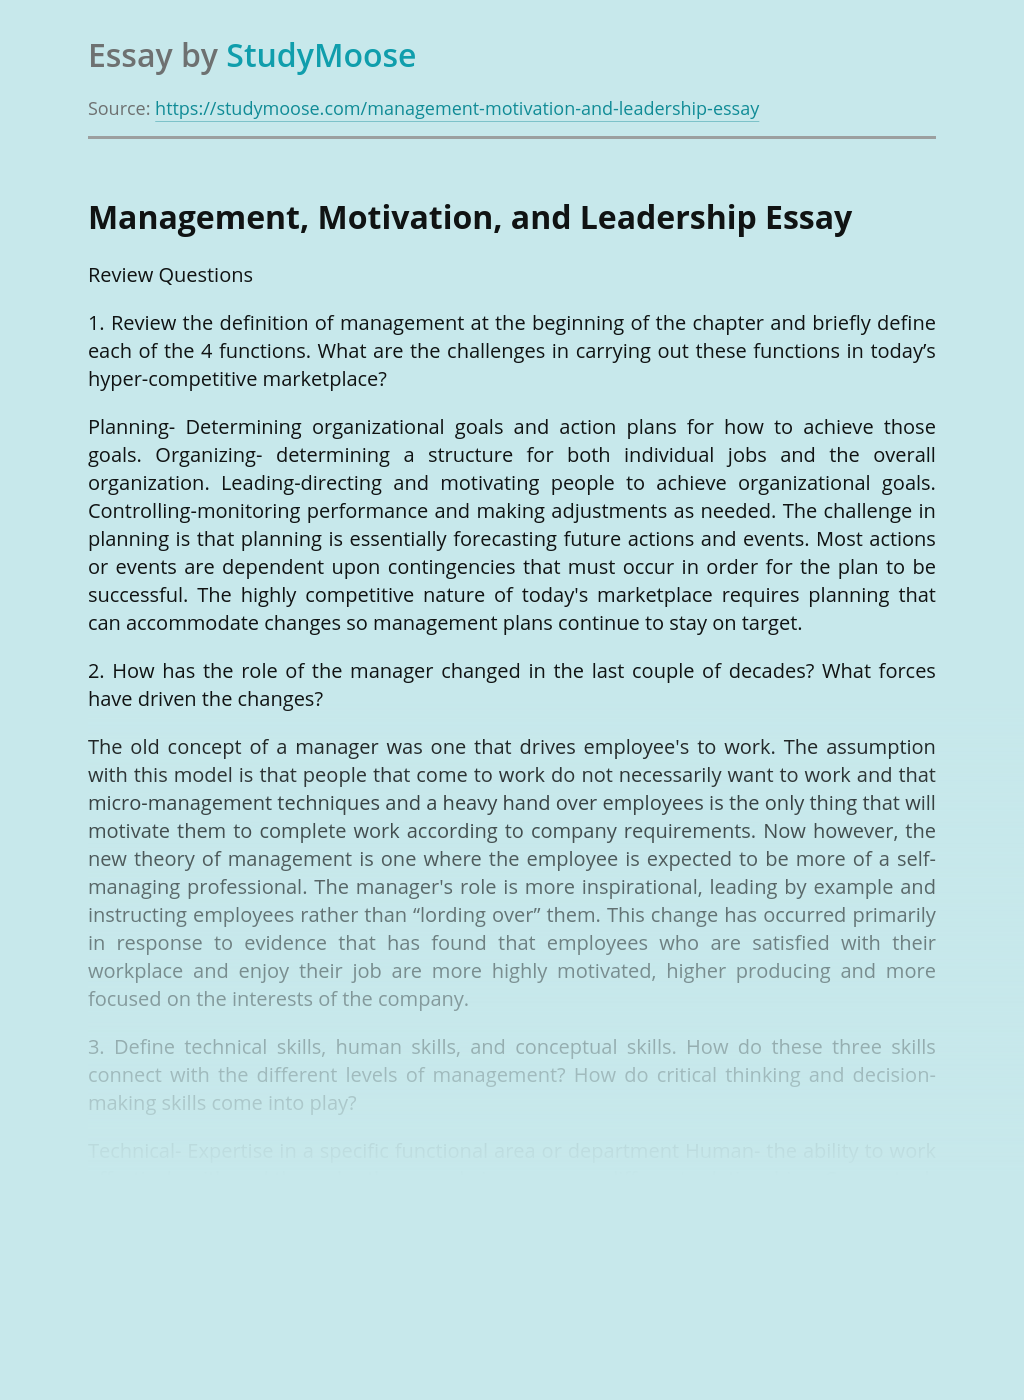 Management, Motivation, and Leadership